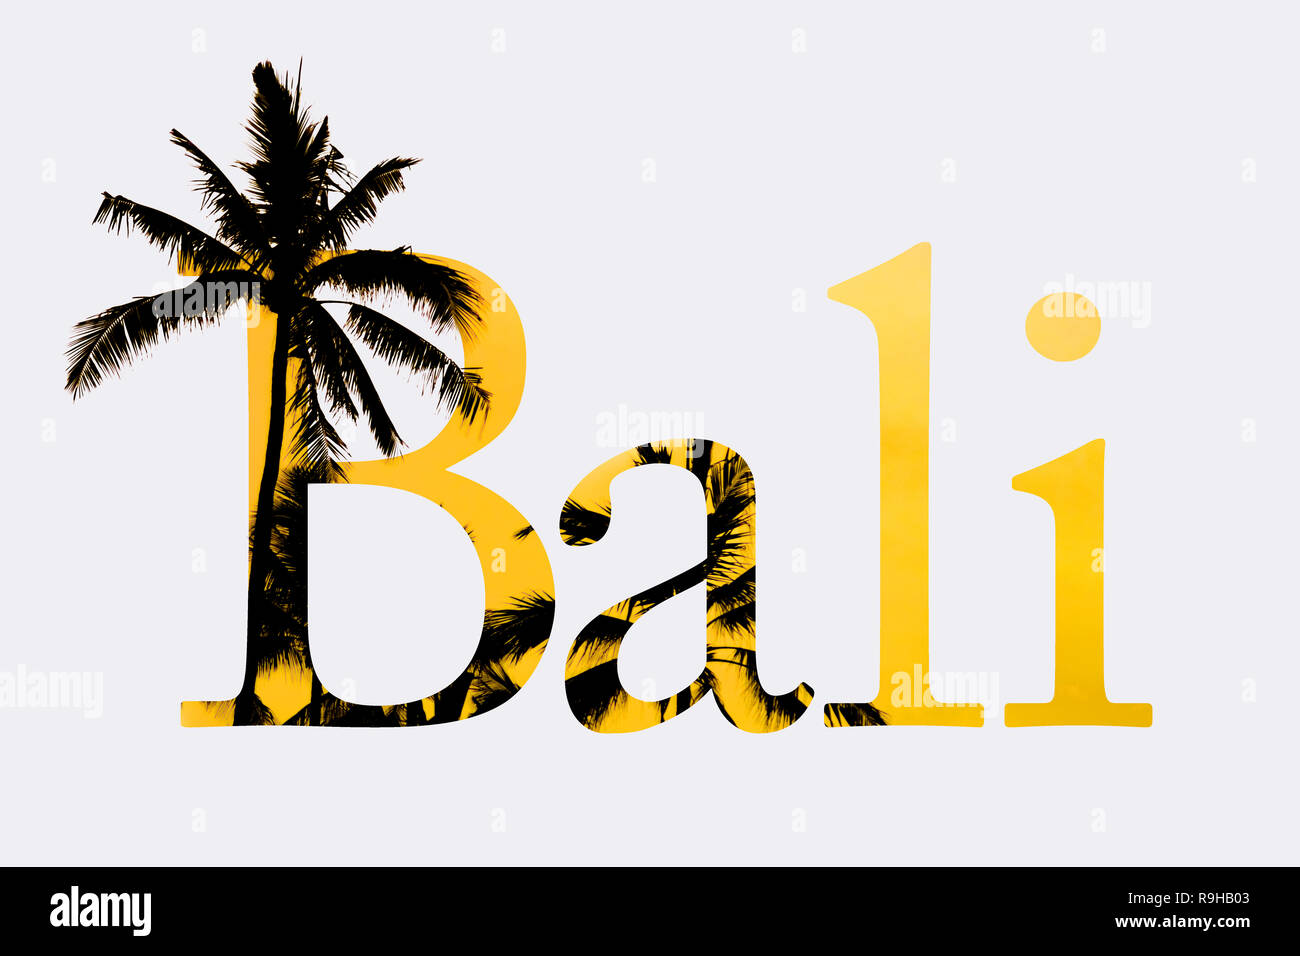 Illustrative text design with the word Bali and palm trees, isolated on white background. useful predesigned text header - Stock Image